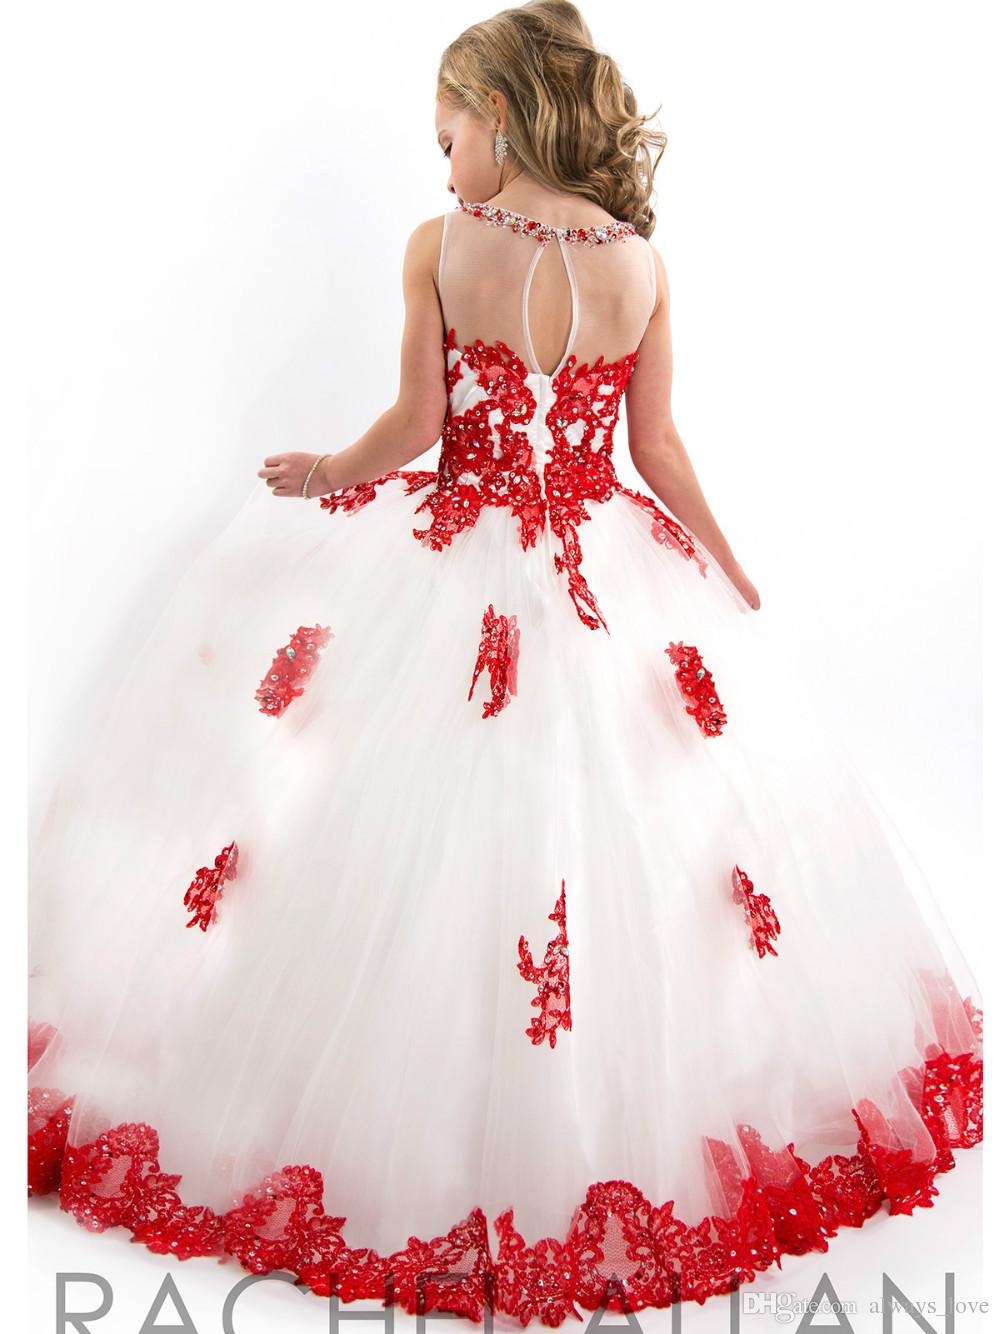 Cute White and Red Girl's Pageant Dress Princess Ball Gown Tulle Party Cupcake Pretty Little Kids Queen Flower Girl Dress